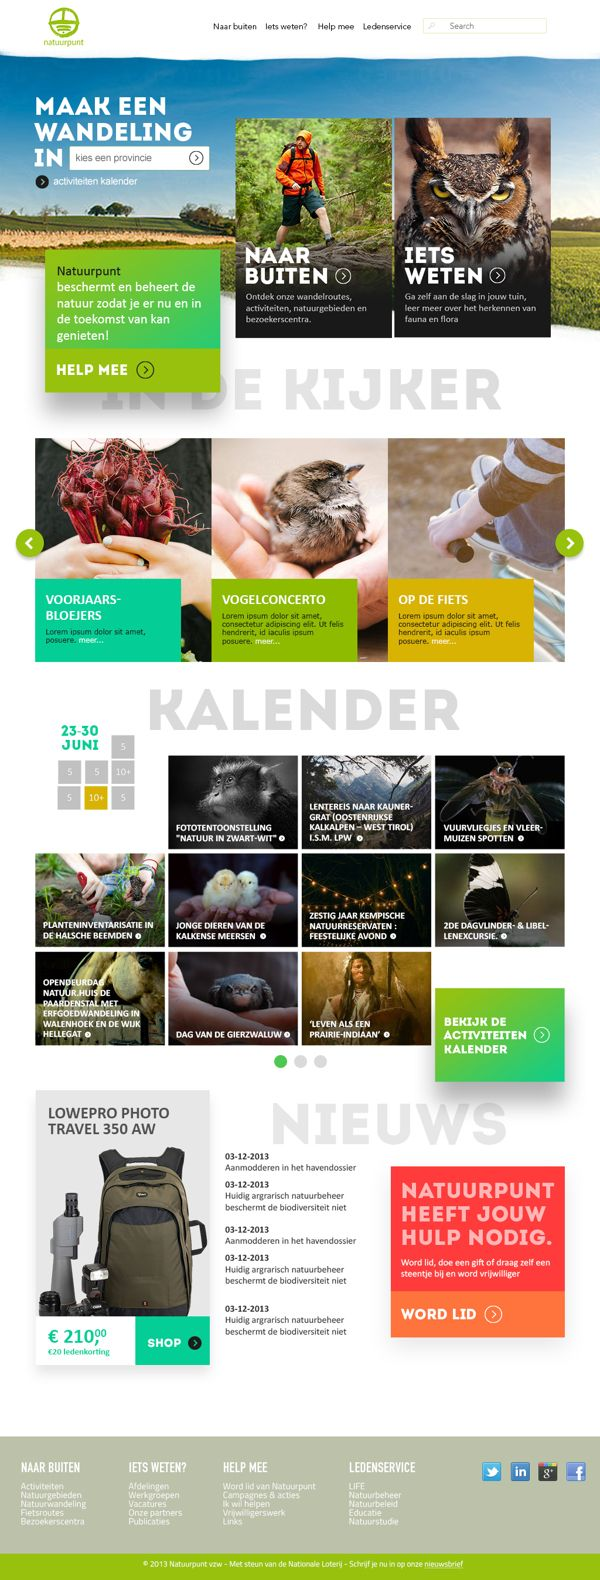 Natuurpunt | #webdesign #design #branding #corporate #website